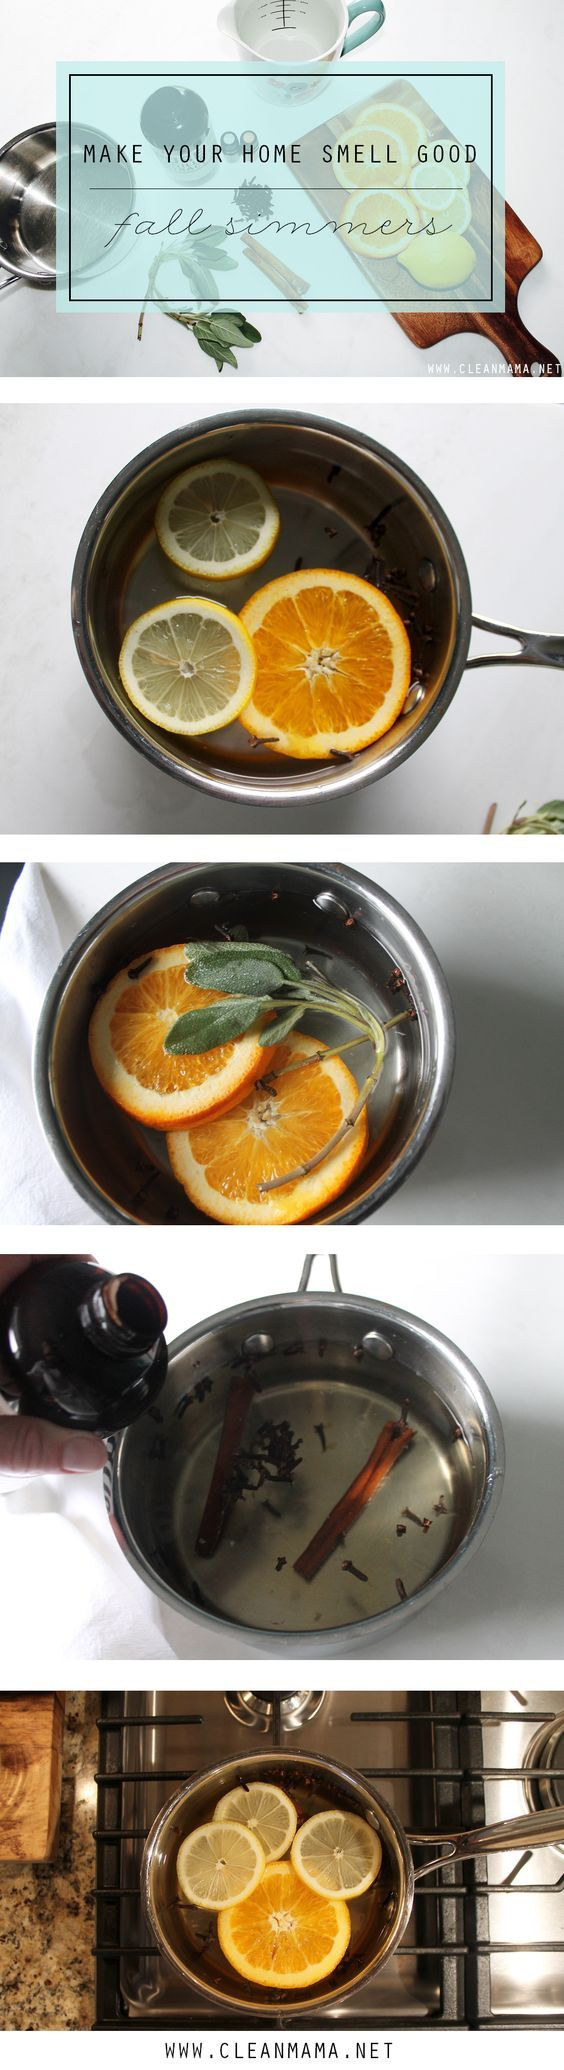 These 8 smell hacks are THE BEST! I'm so glad I found these AWESOME tips! Now I can make my home smell like Fall and the holidays! Definitely pinning for later!